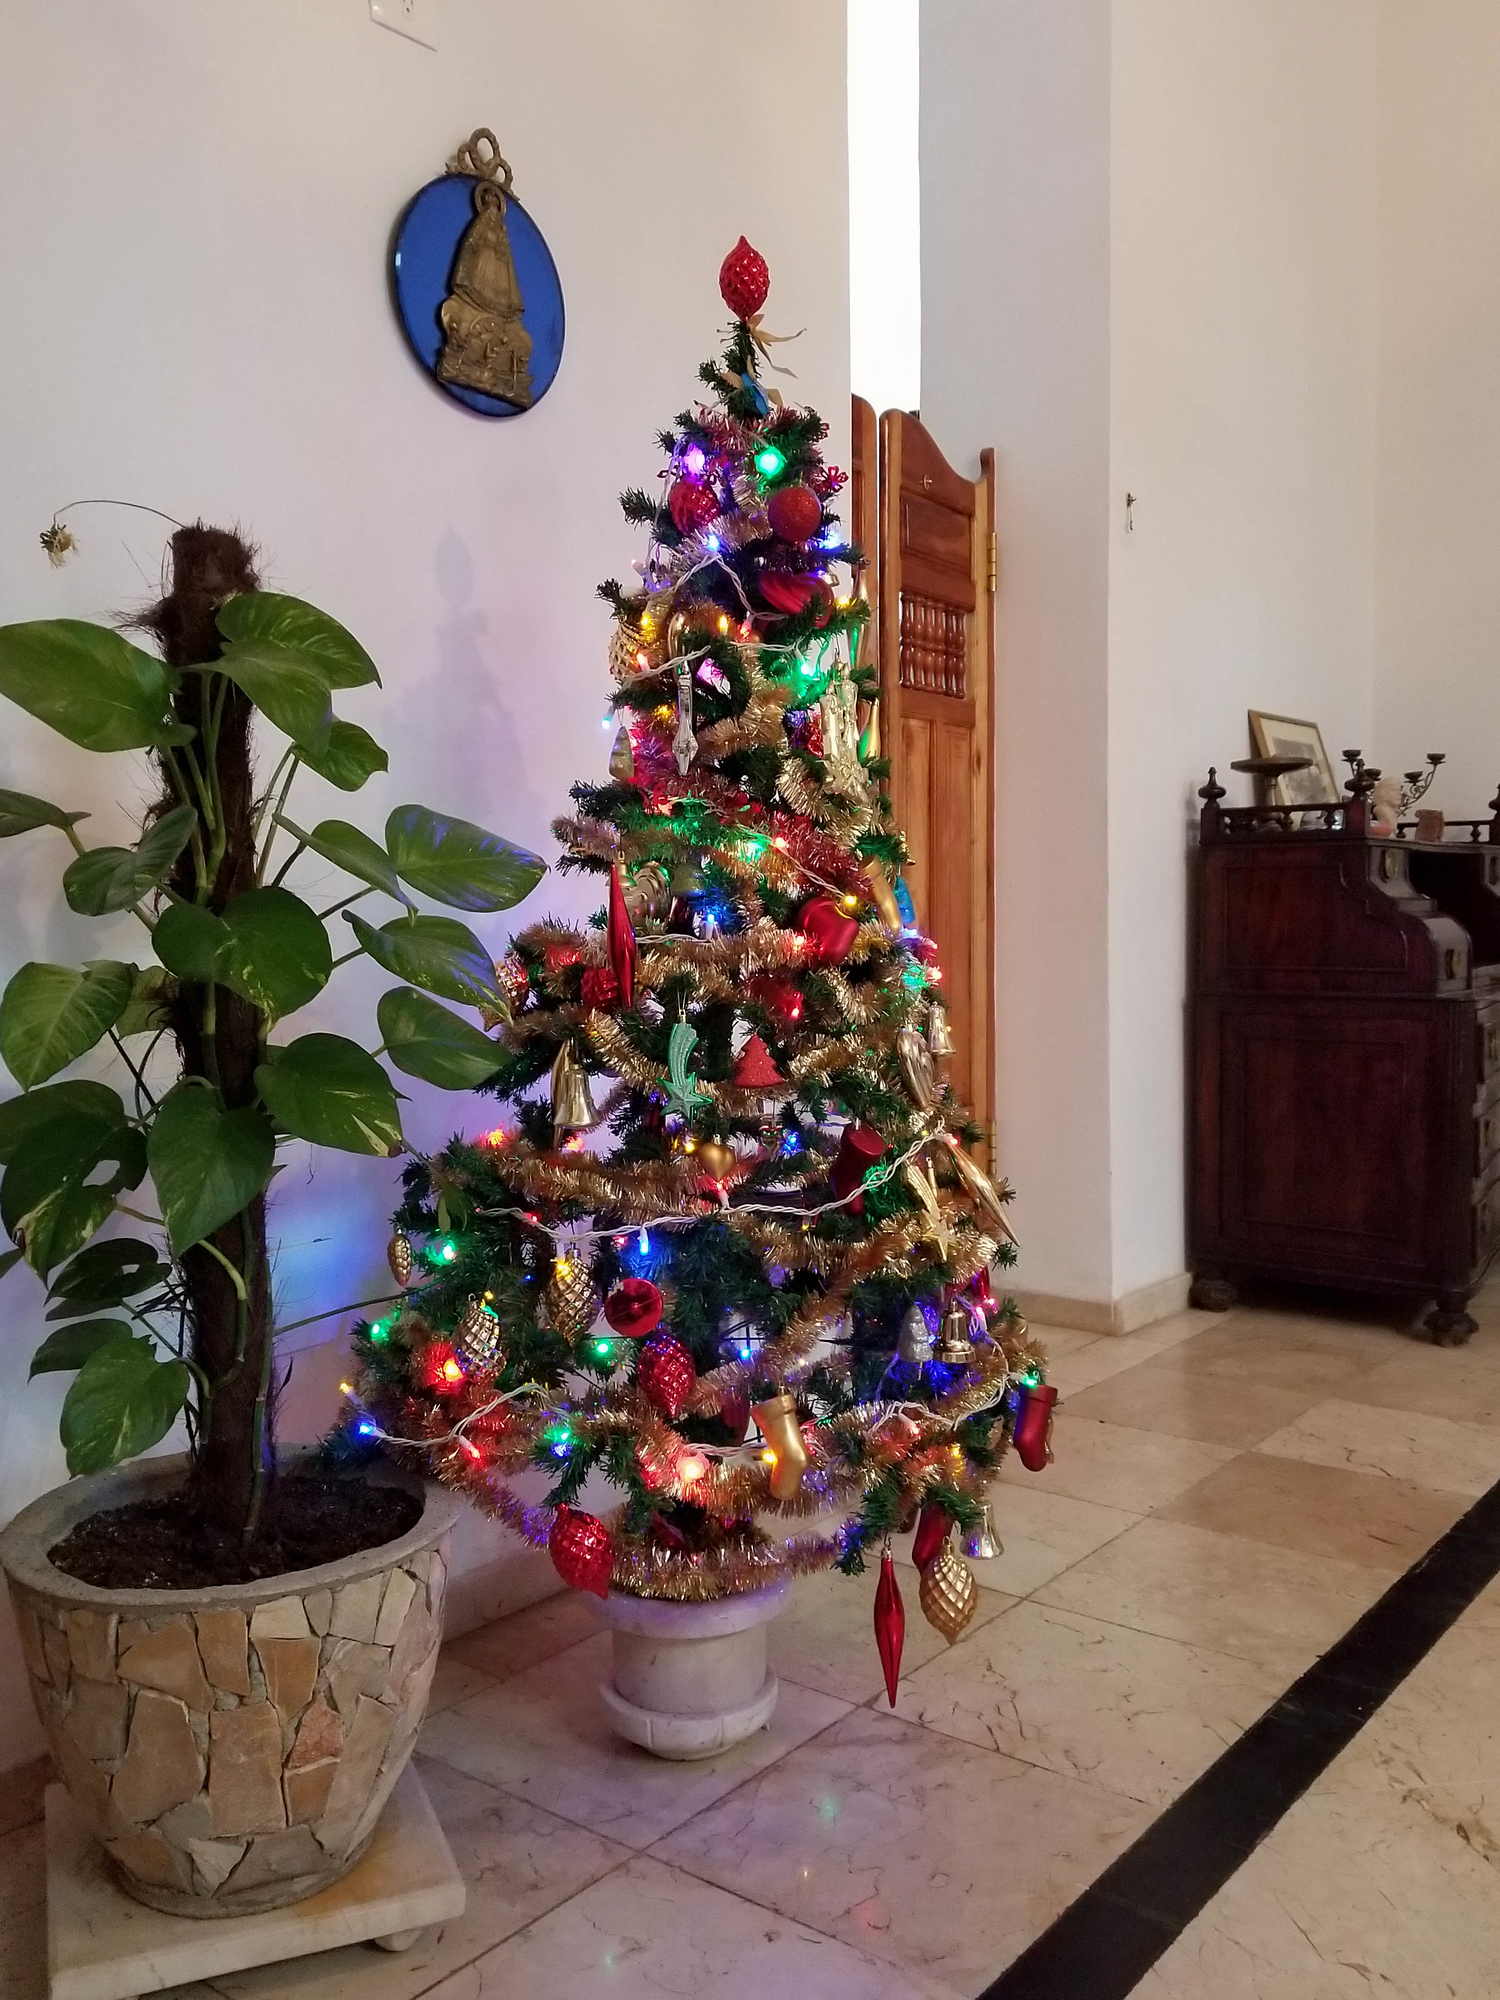 Christmas in Cuba usually has a very modest Christmas tree, discover the other traditions and where to spend Christmas.